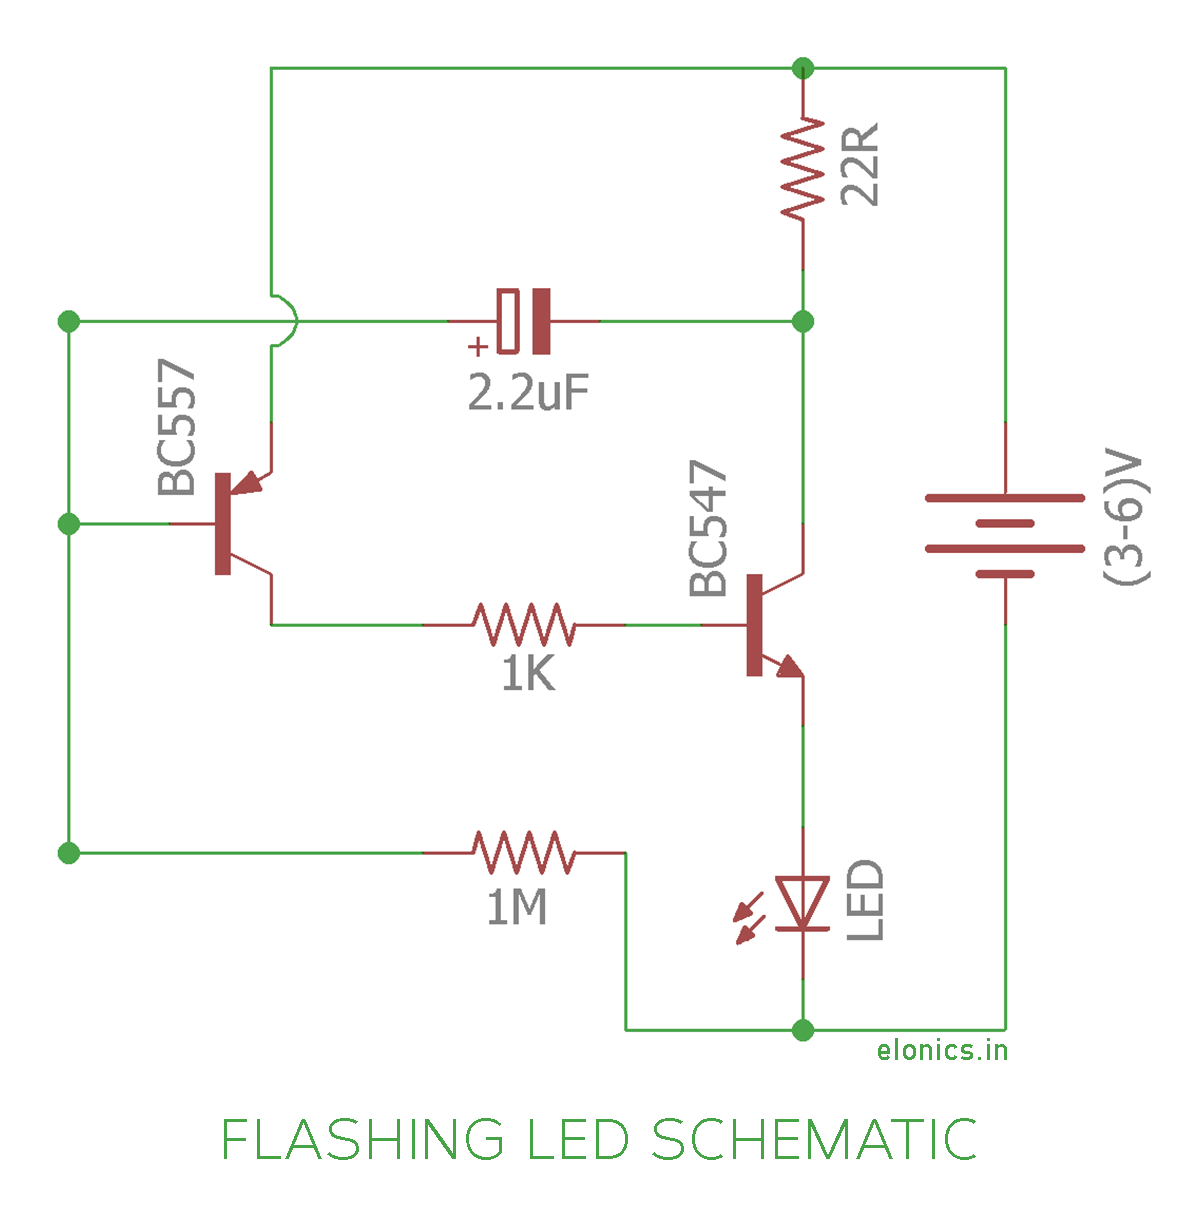 simple flashing led circuit using transistors elonics rh elonics in 12v flashing led circuit diagram 12v flashing led circuit diagram